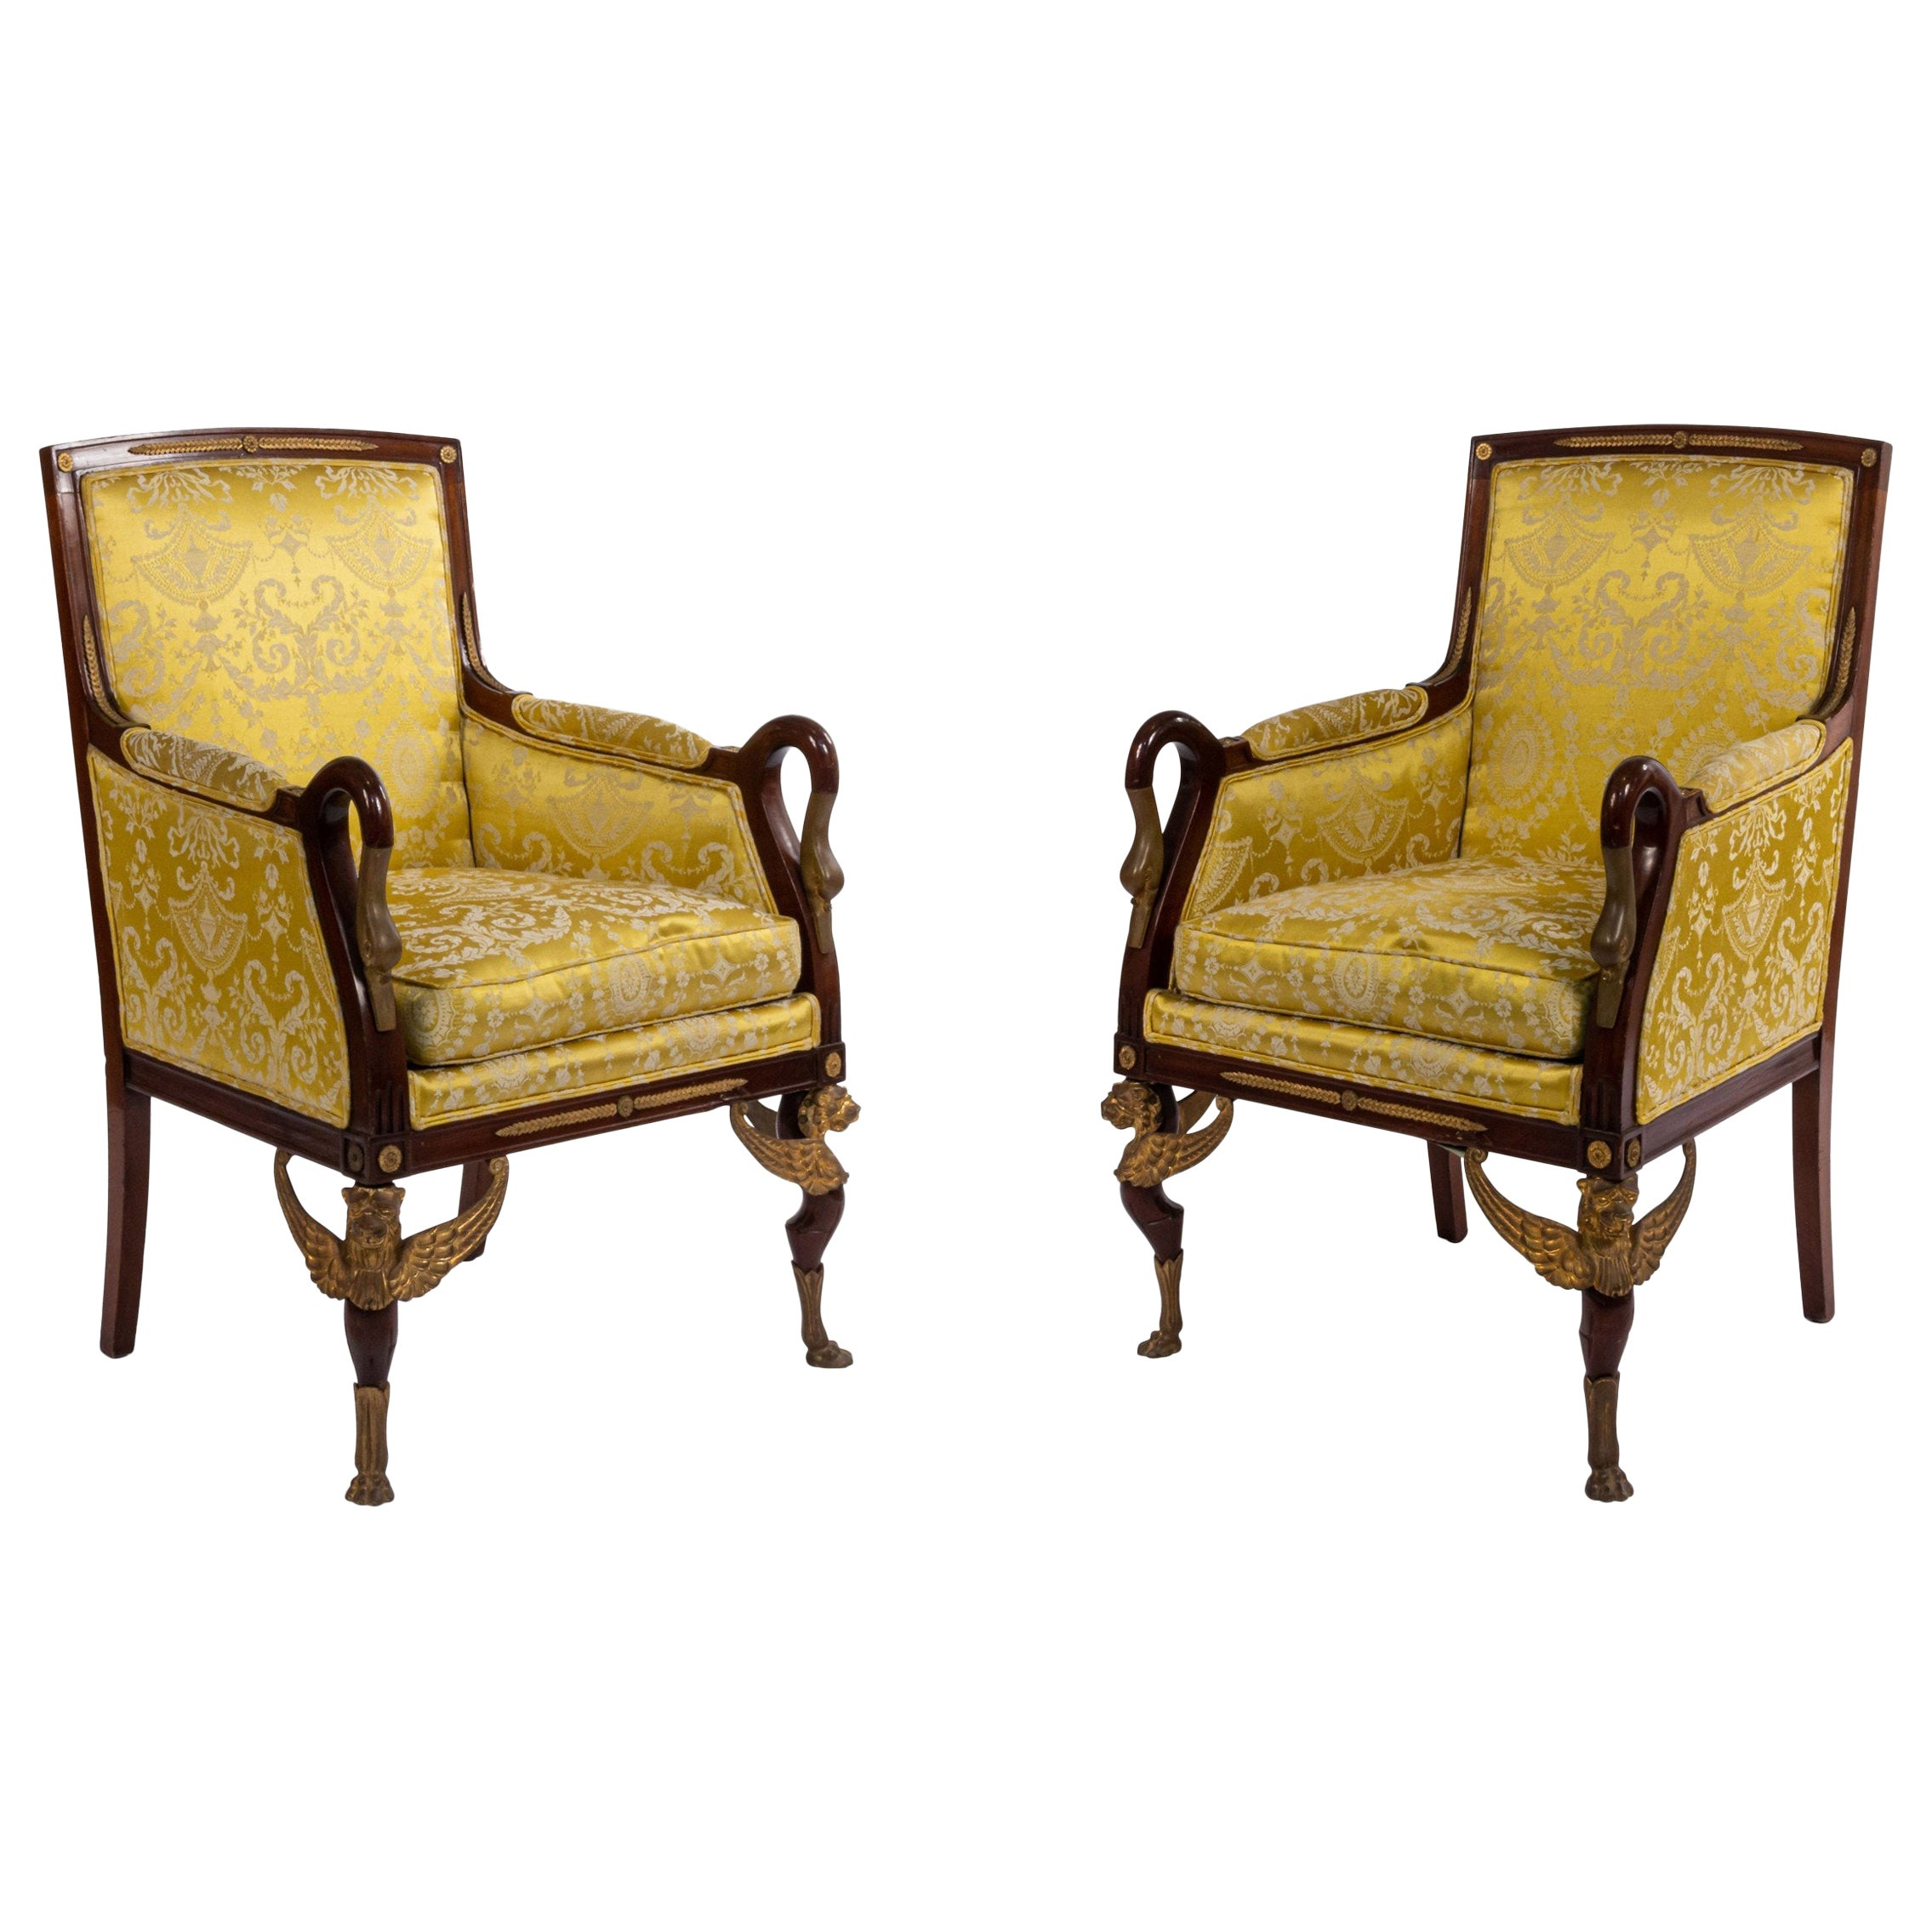 French Empire Gold Bergère Armchairs